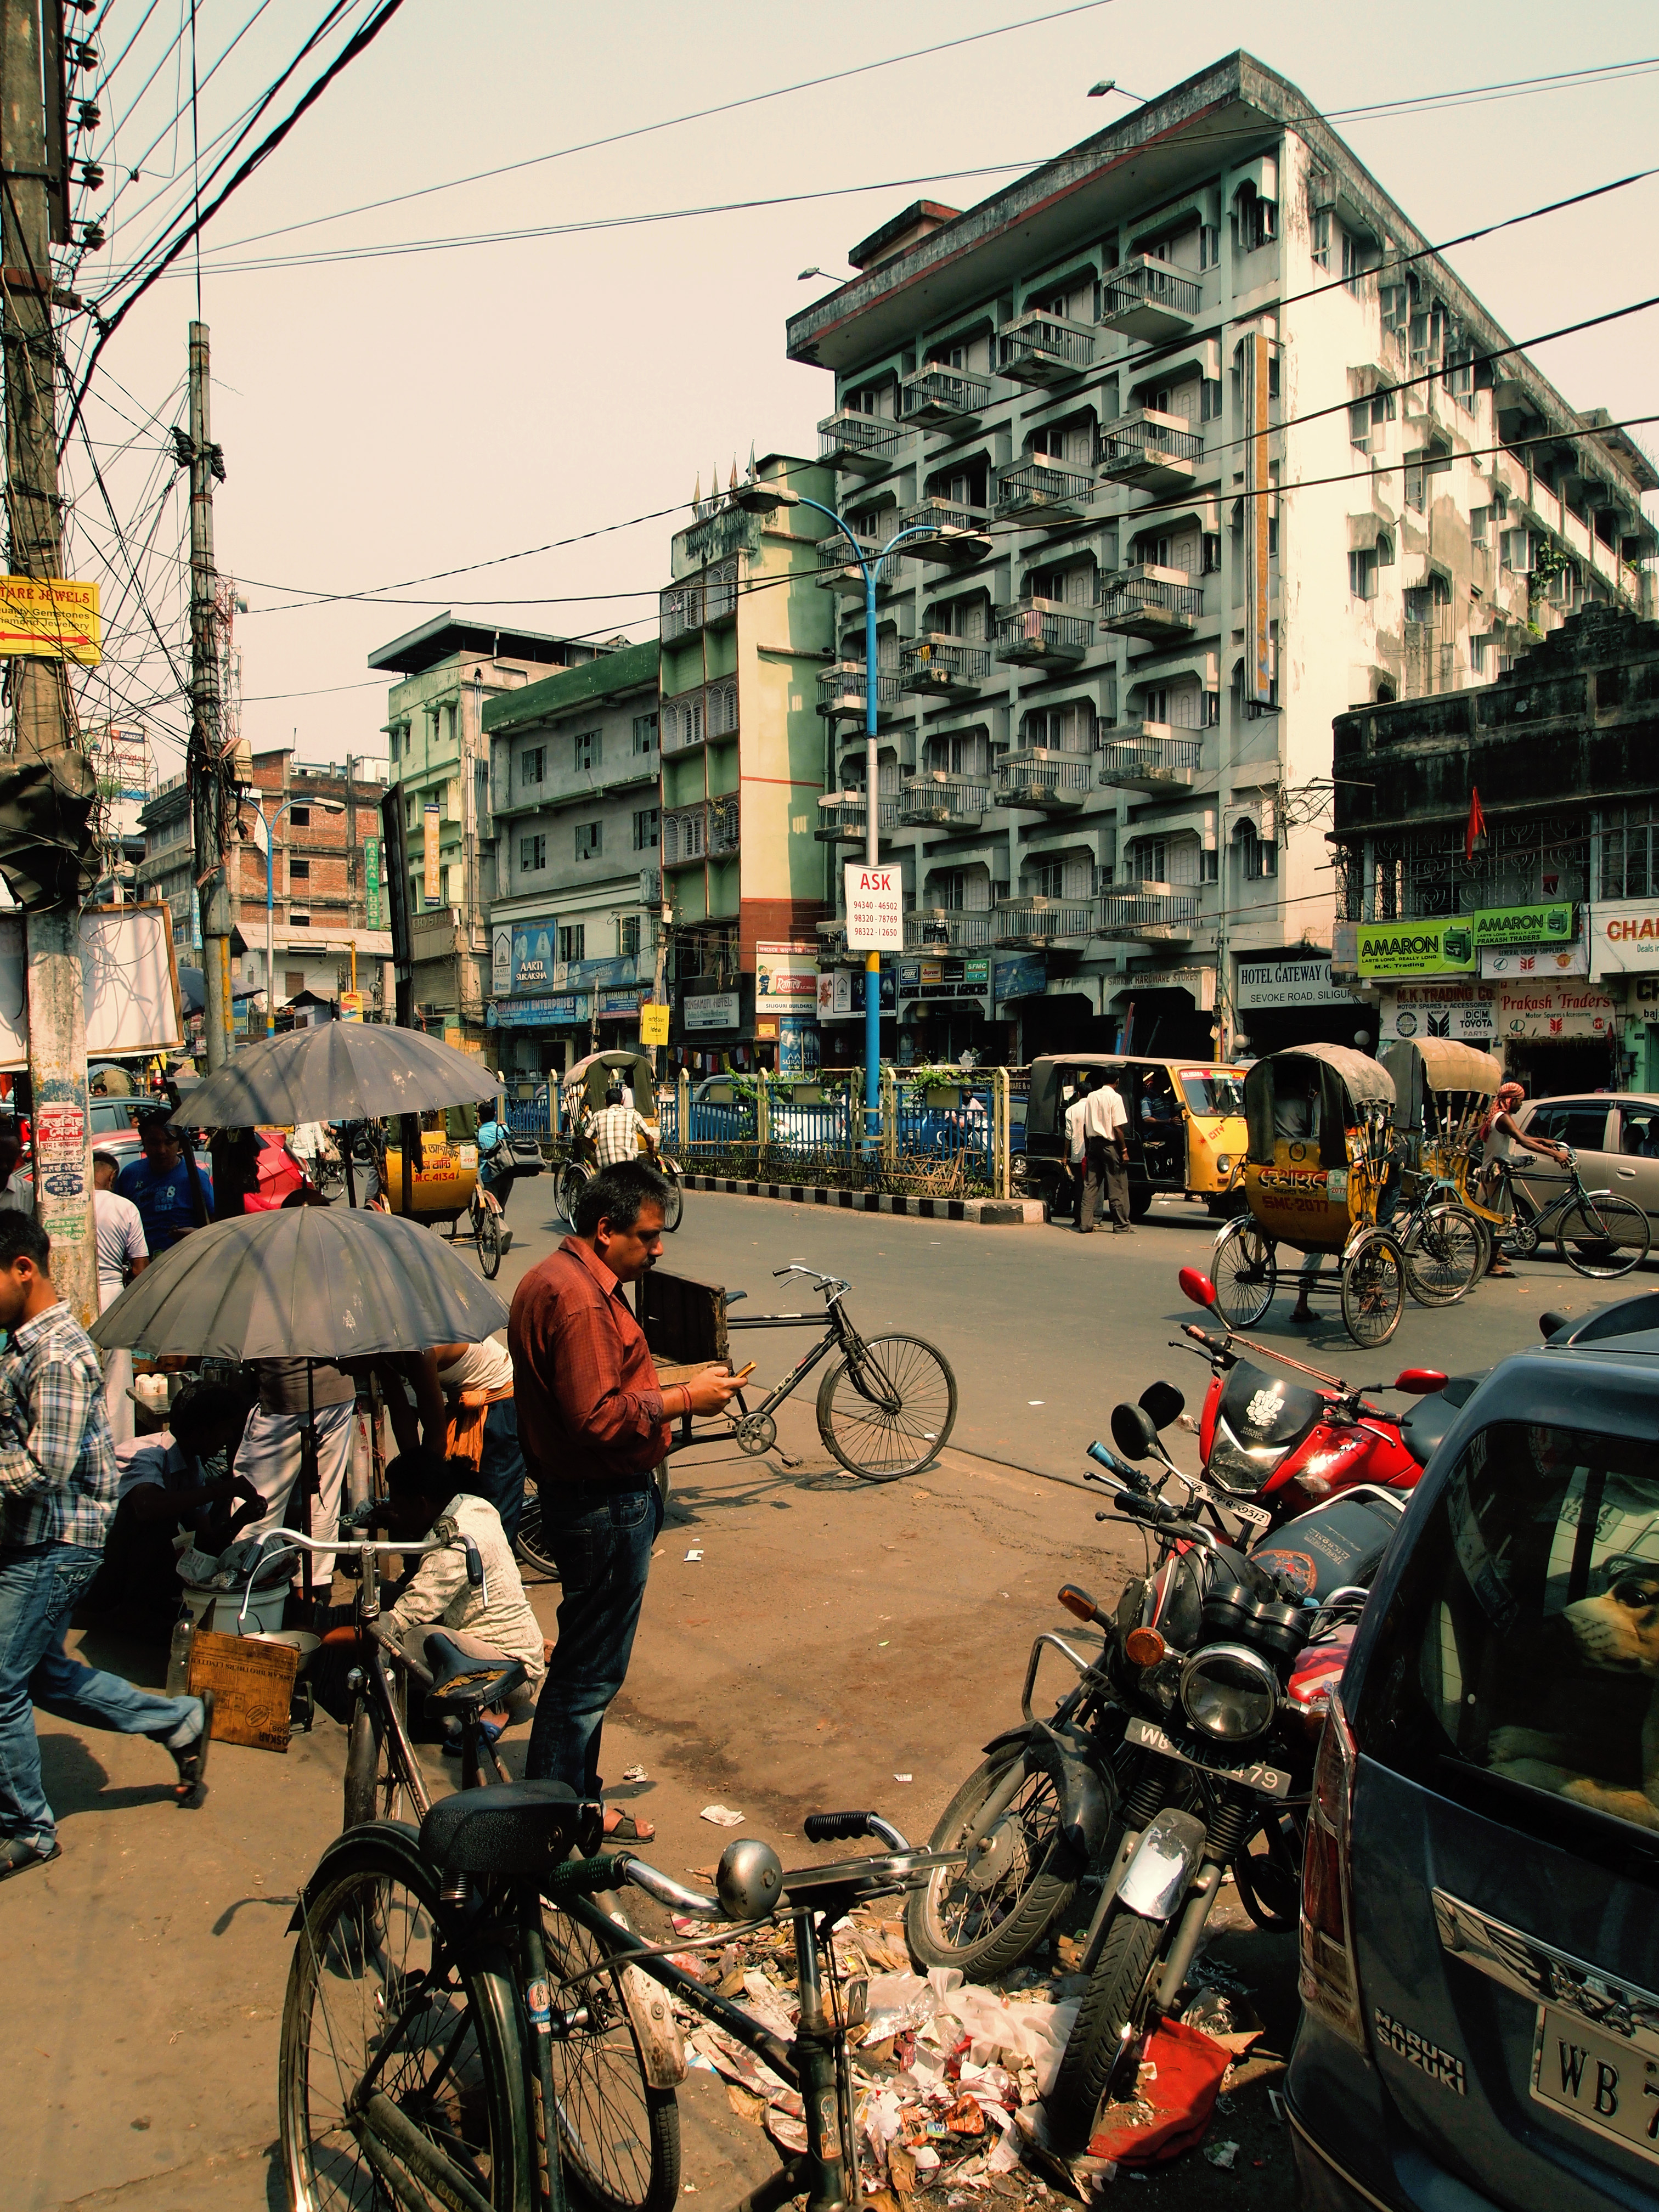 Siliguri: My Found Town